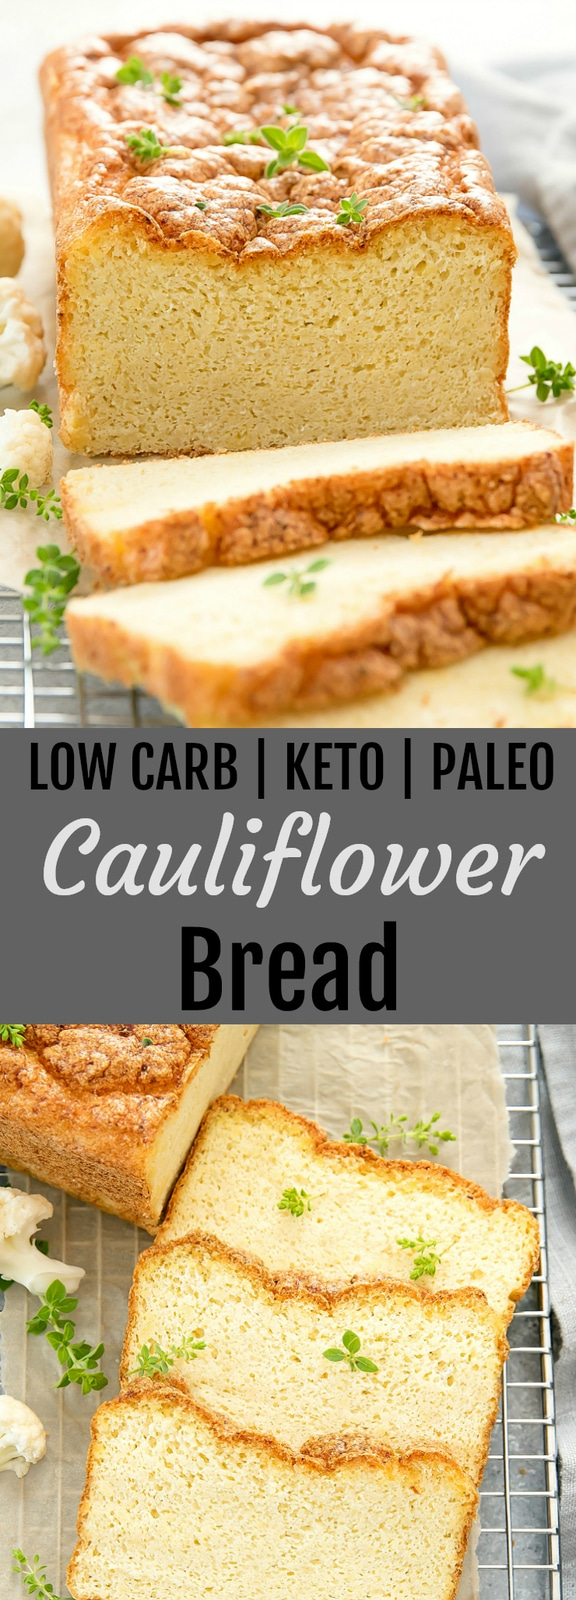 Cauliflower Bread. This is the best cauliflower bread! It's sturdy enough for sandwiches and toast. It is also gluten free, paleo, keto and low carb.